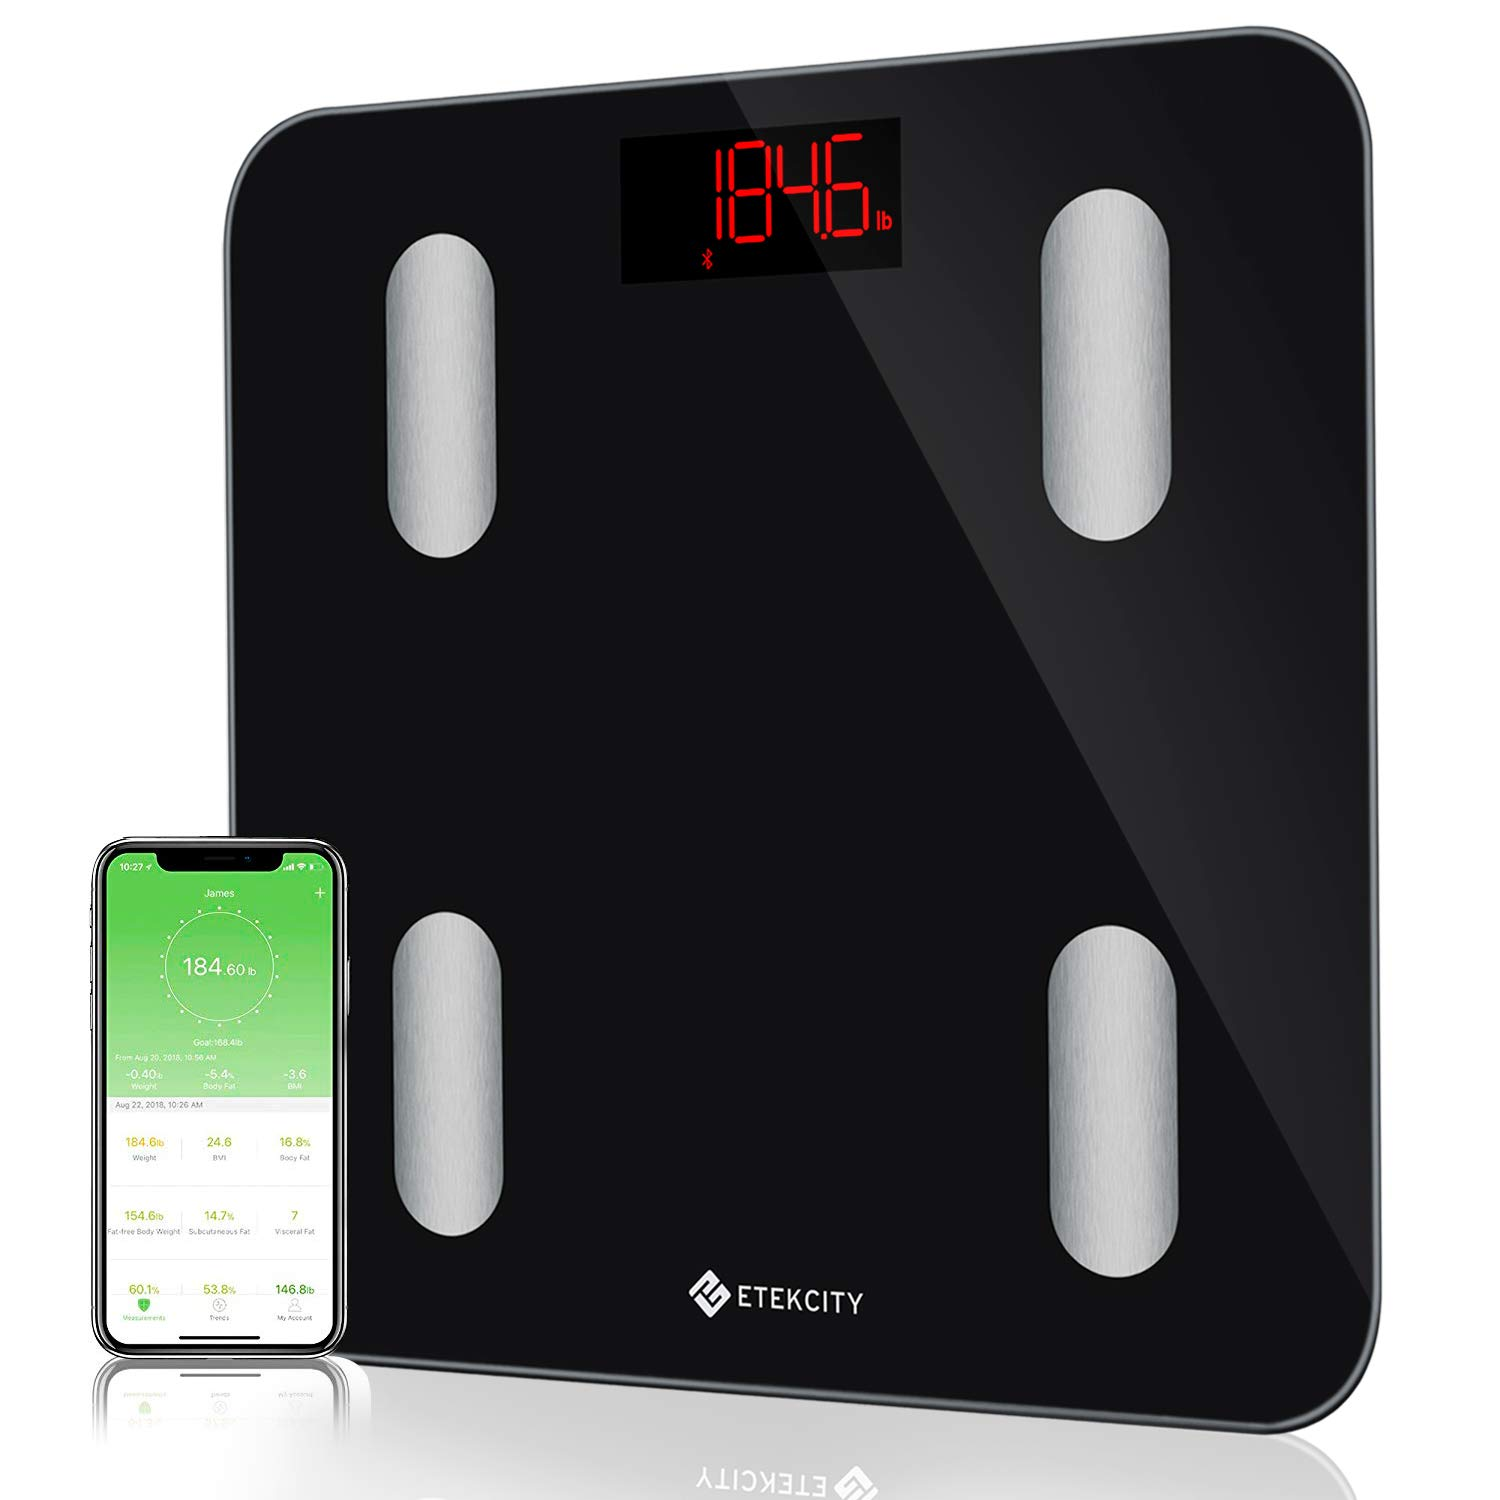 Etekcity Bluetooth Body Fat Scale, Digital Bathroom Weight Scale with Smartphone APP to Monitor 13 Body Composition Include Body Fat, BMI, BMR, Muscle, Water, Bone and More, 400 lbs